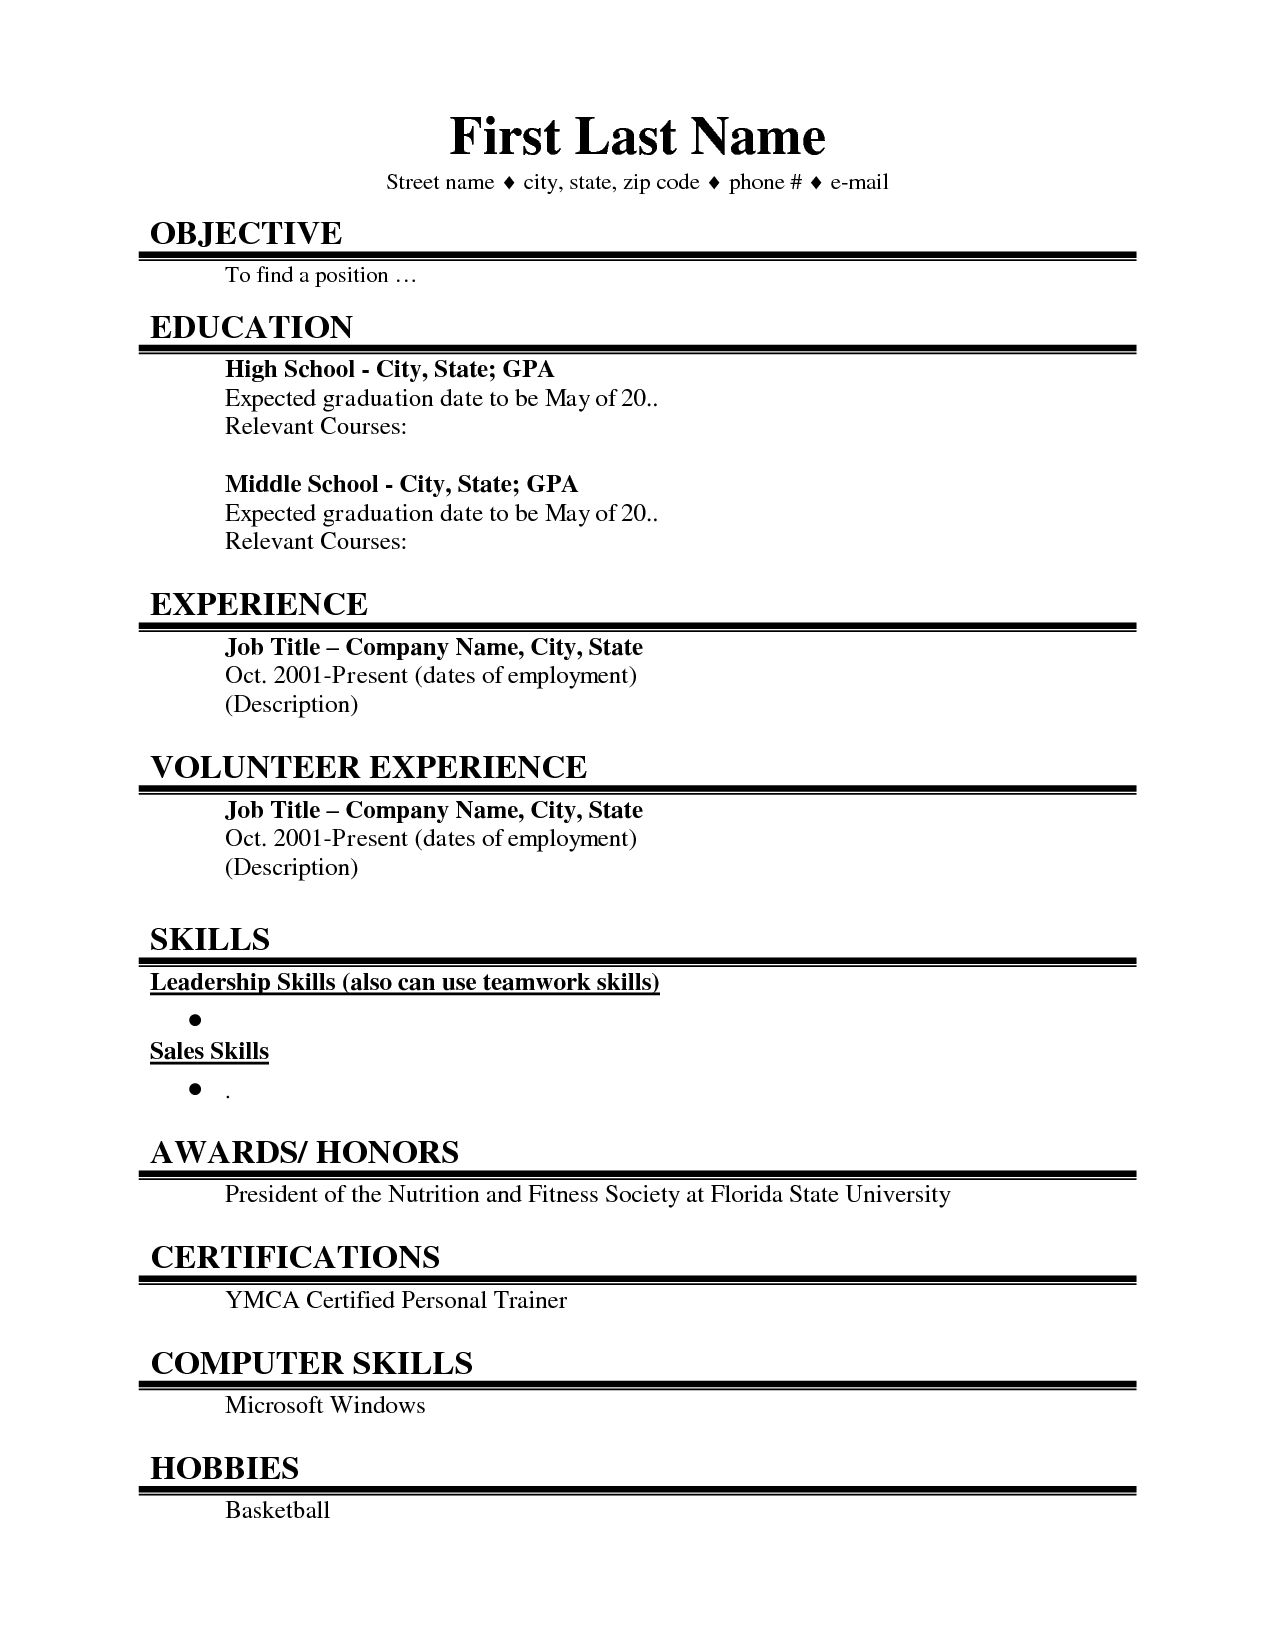 resume template for collegevolunteer resume business letter sample high school resume building - How To Write A Job Resume Examples